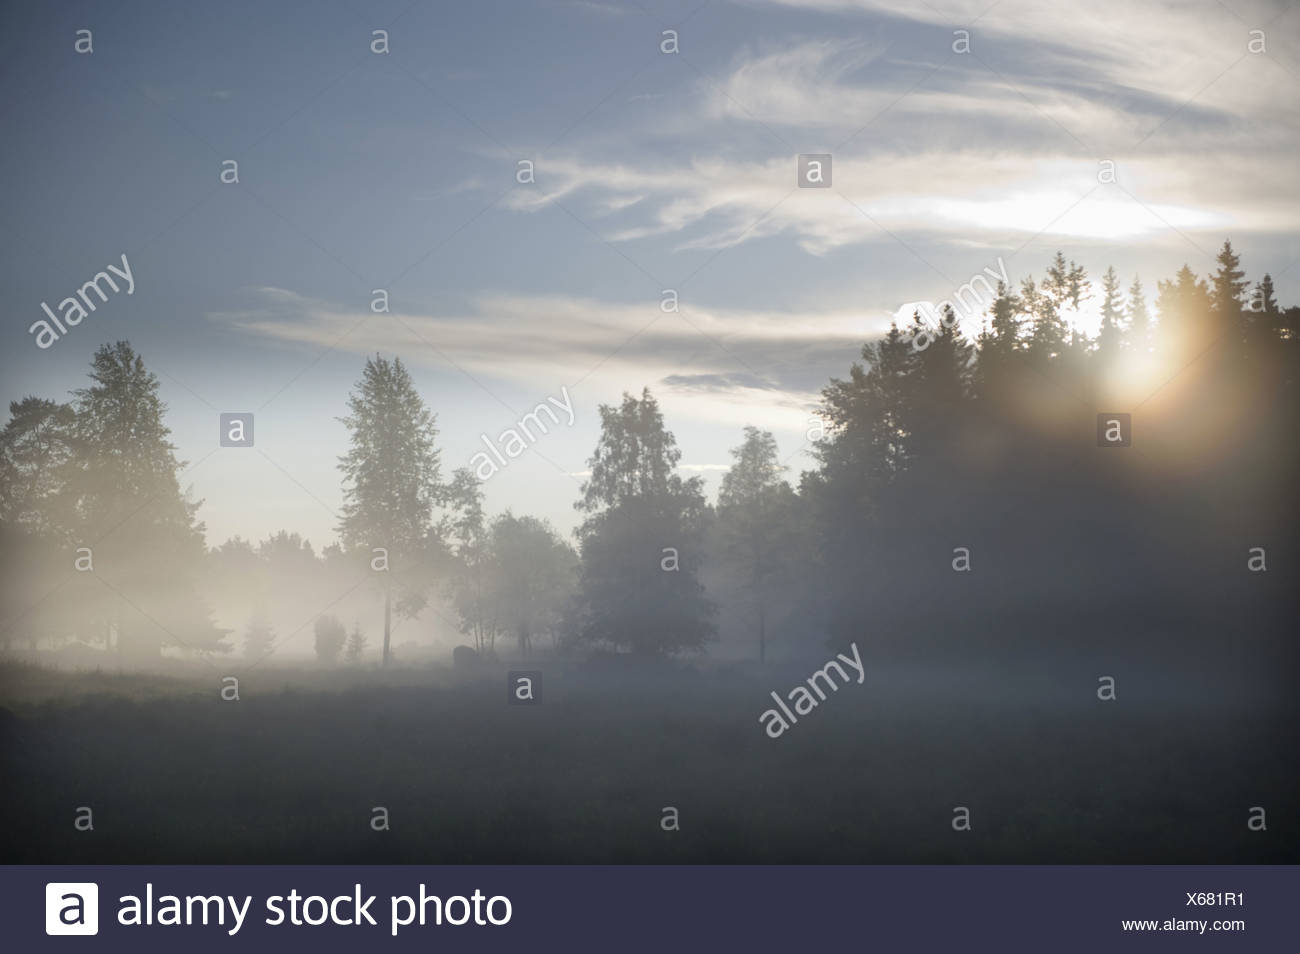 View over misty field - Stock Image